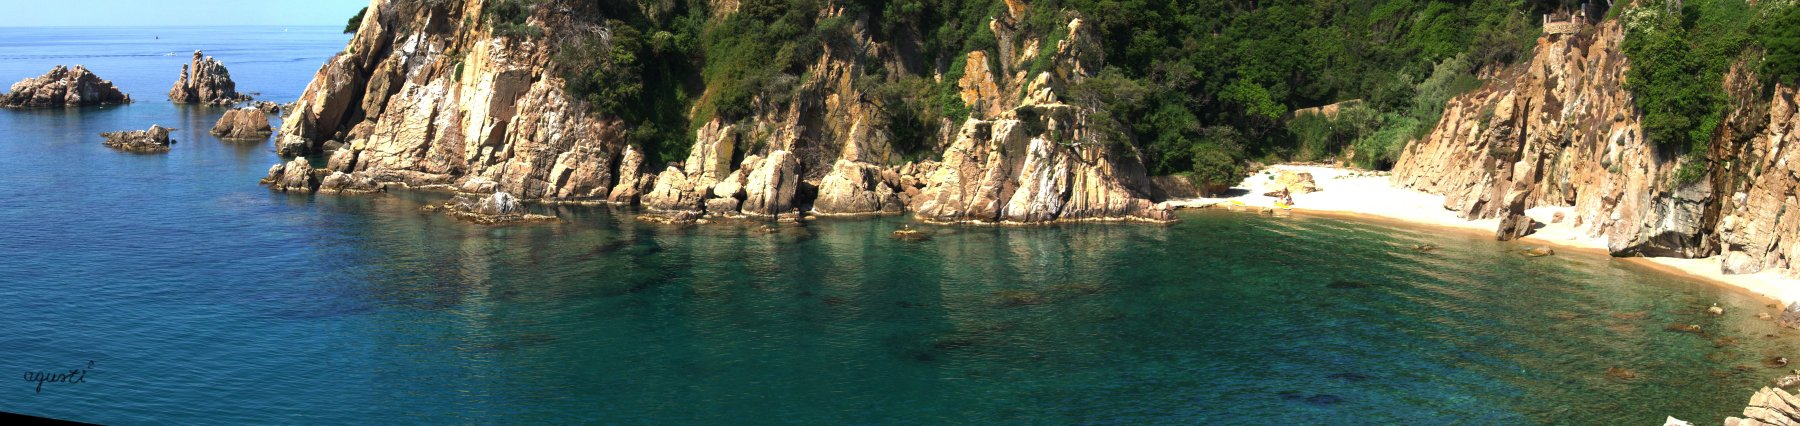 Blanes_03 (06-2015)_01